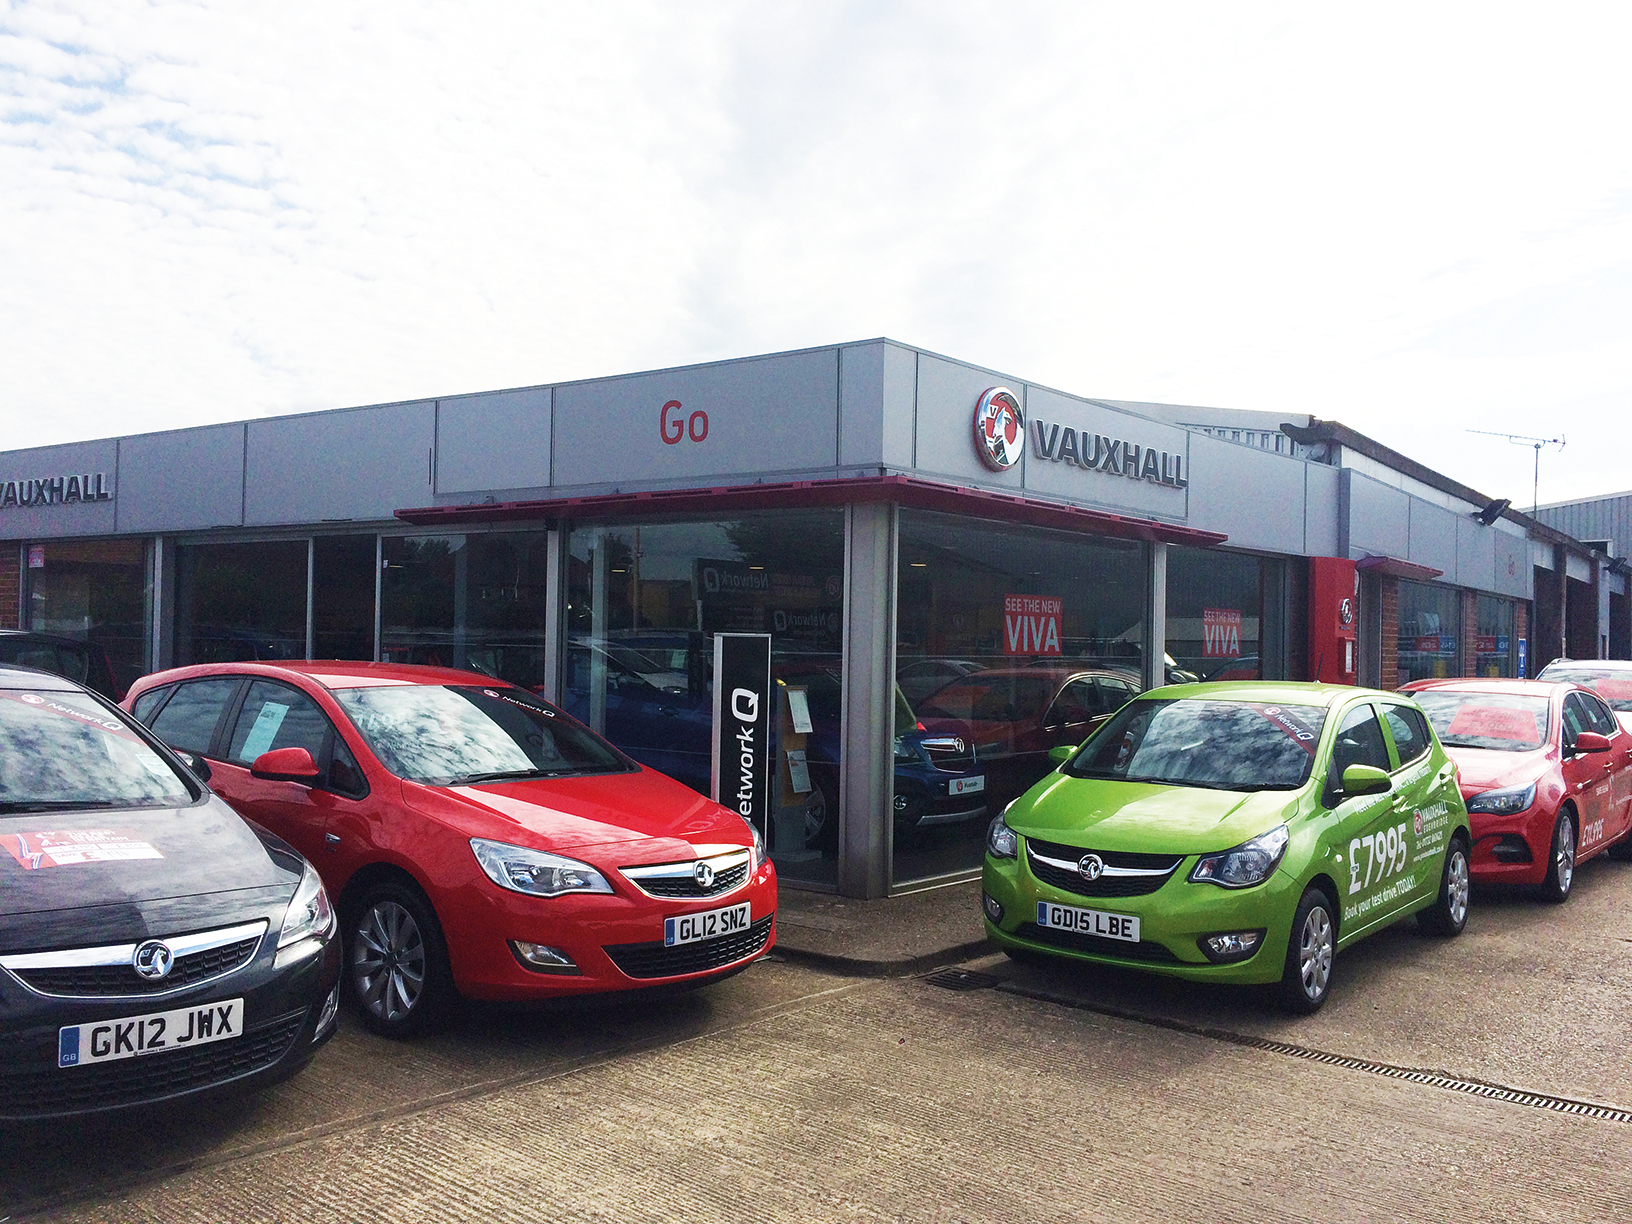 Go Vauxhall for all your motoring needs…and with a passion for the community